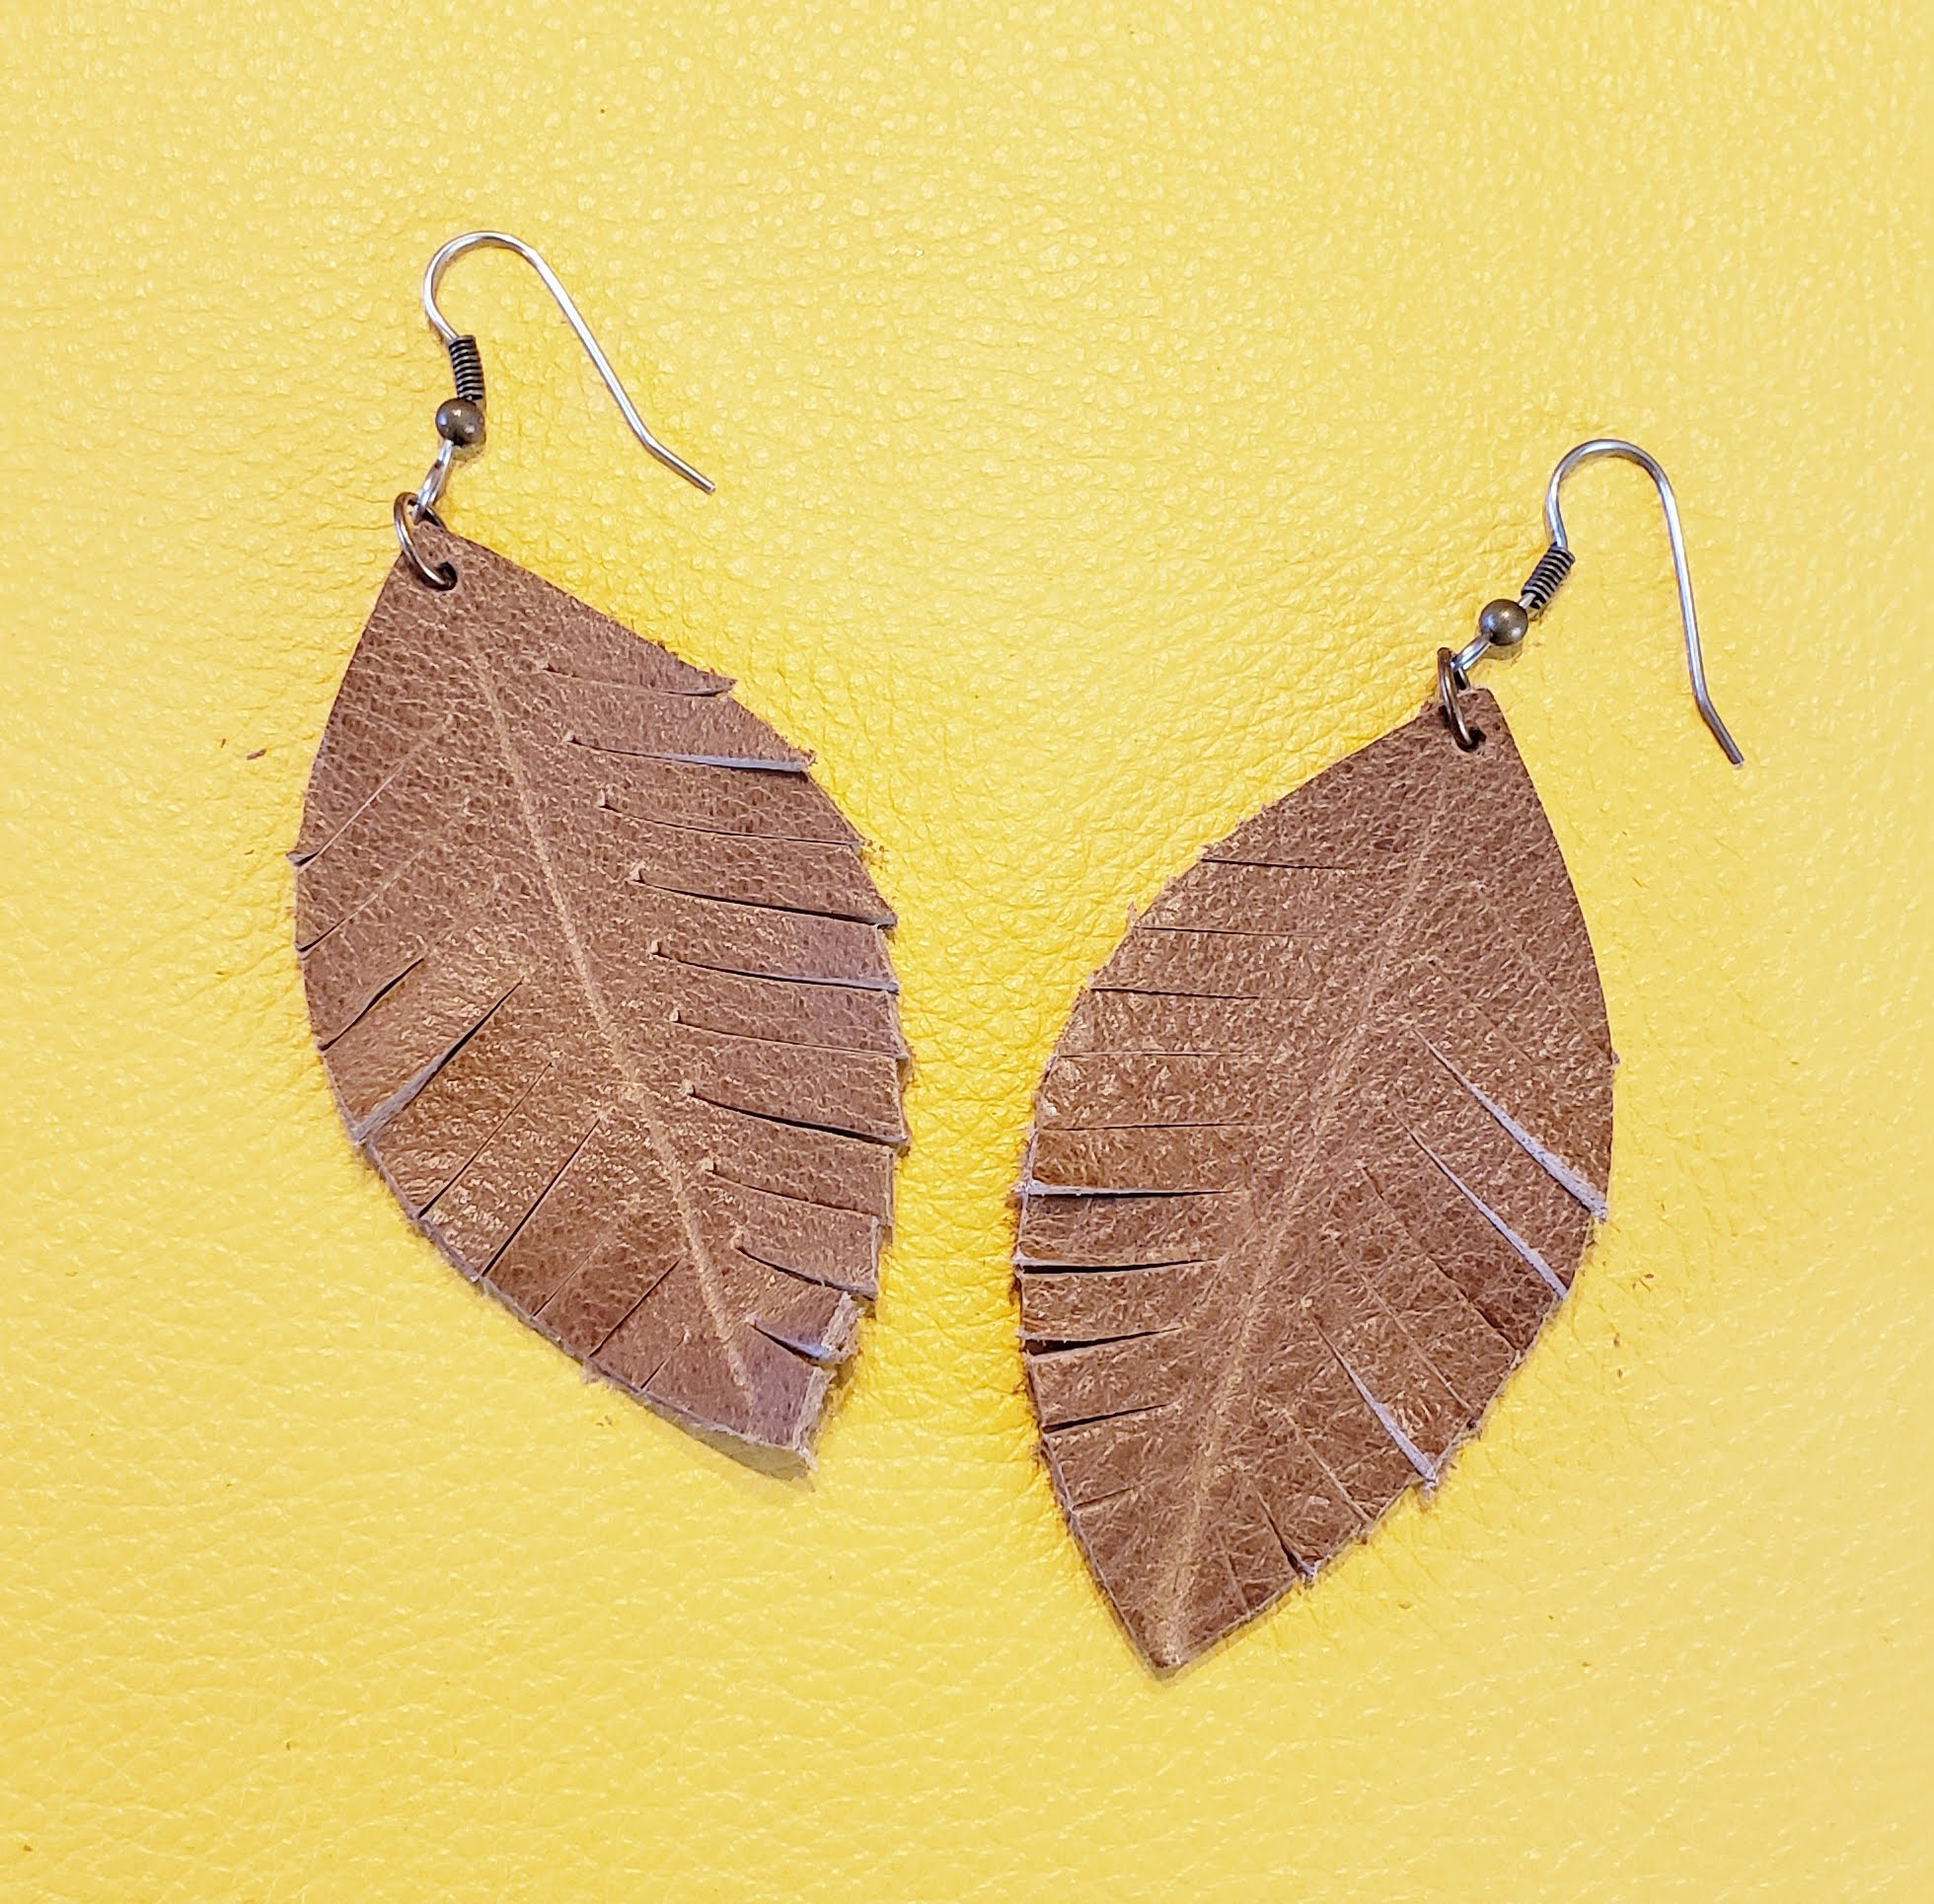 Rustic Brown Leather Earrings / Fringed Leaf Earrings / Boho Earrings / Joanna Gaines Jewelry